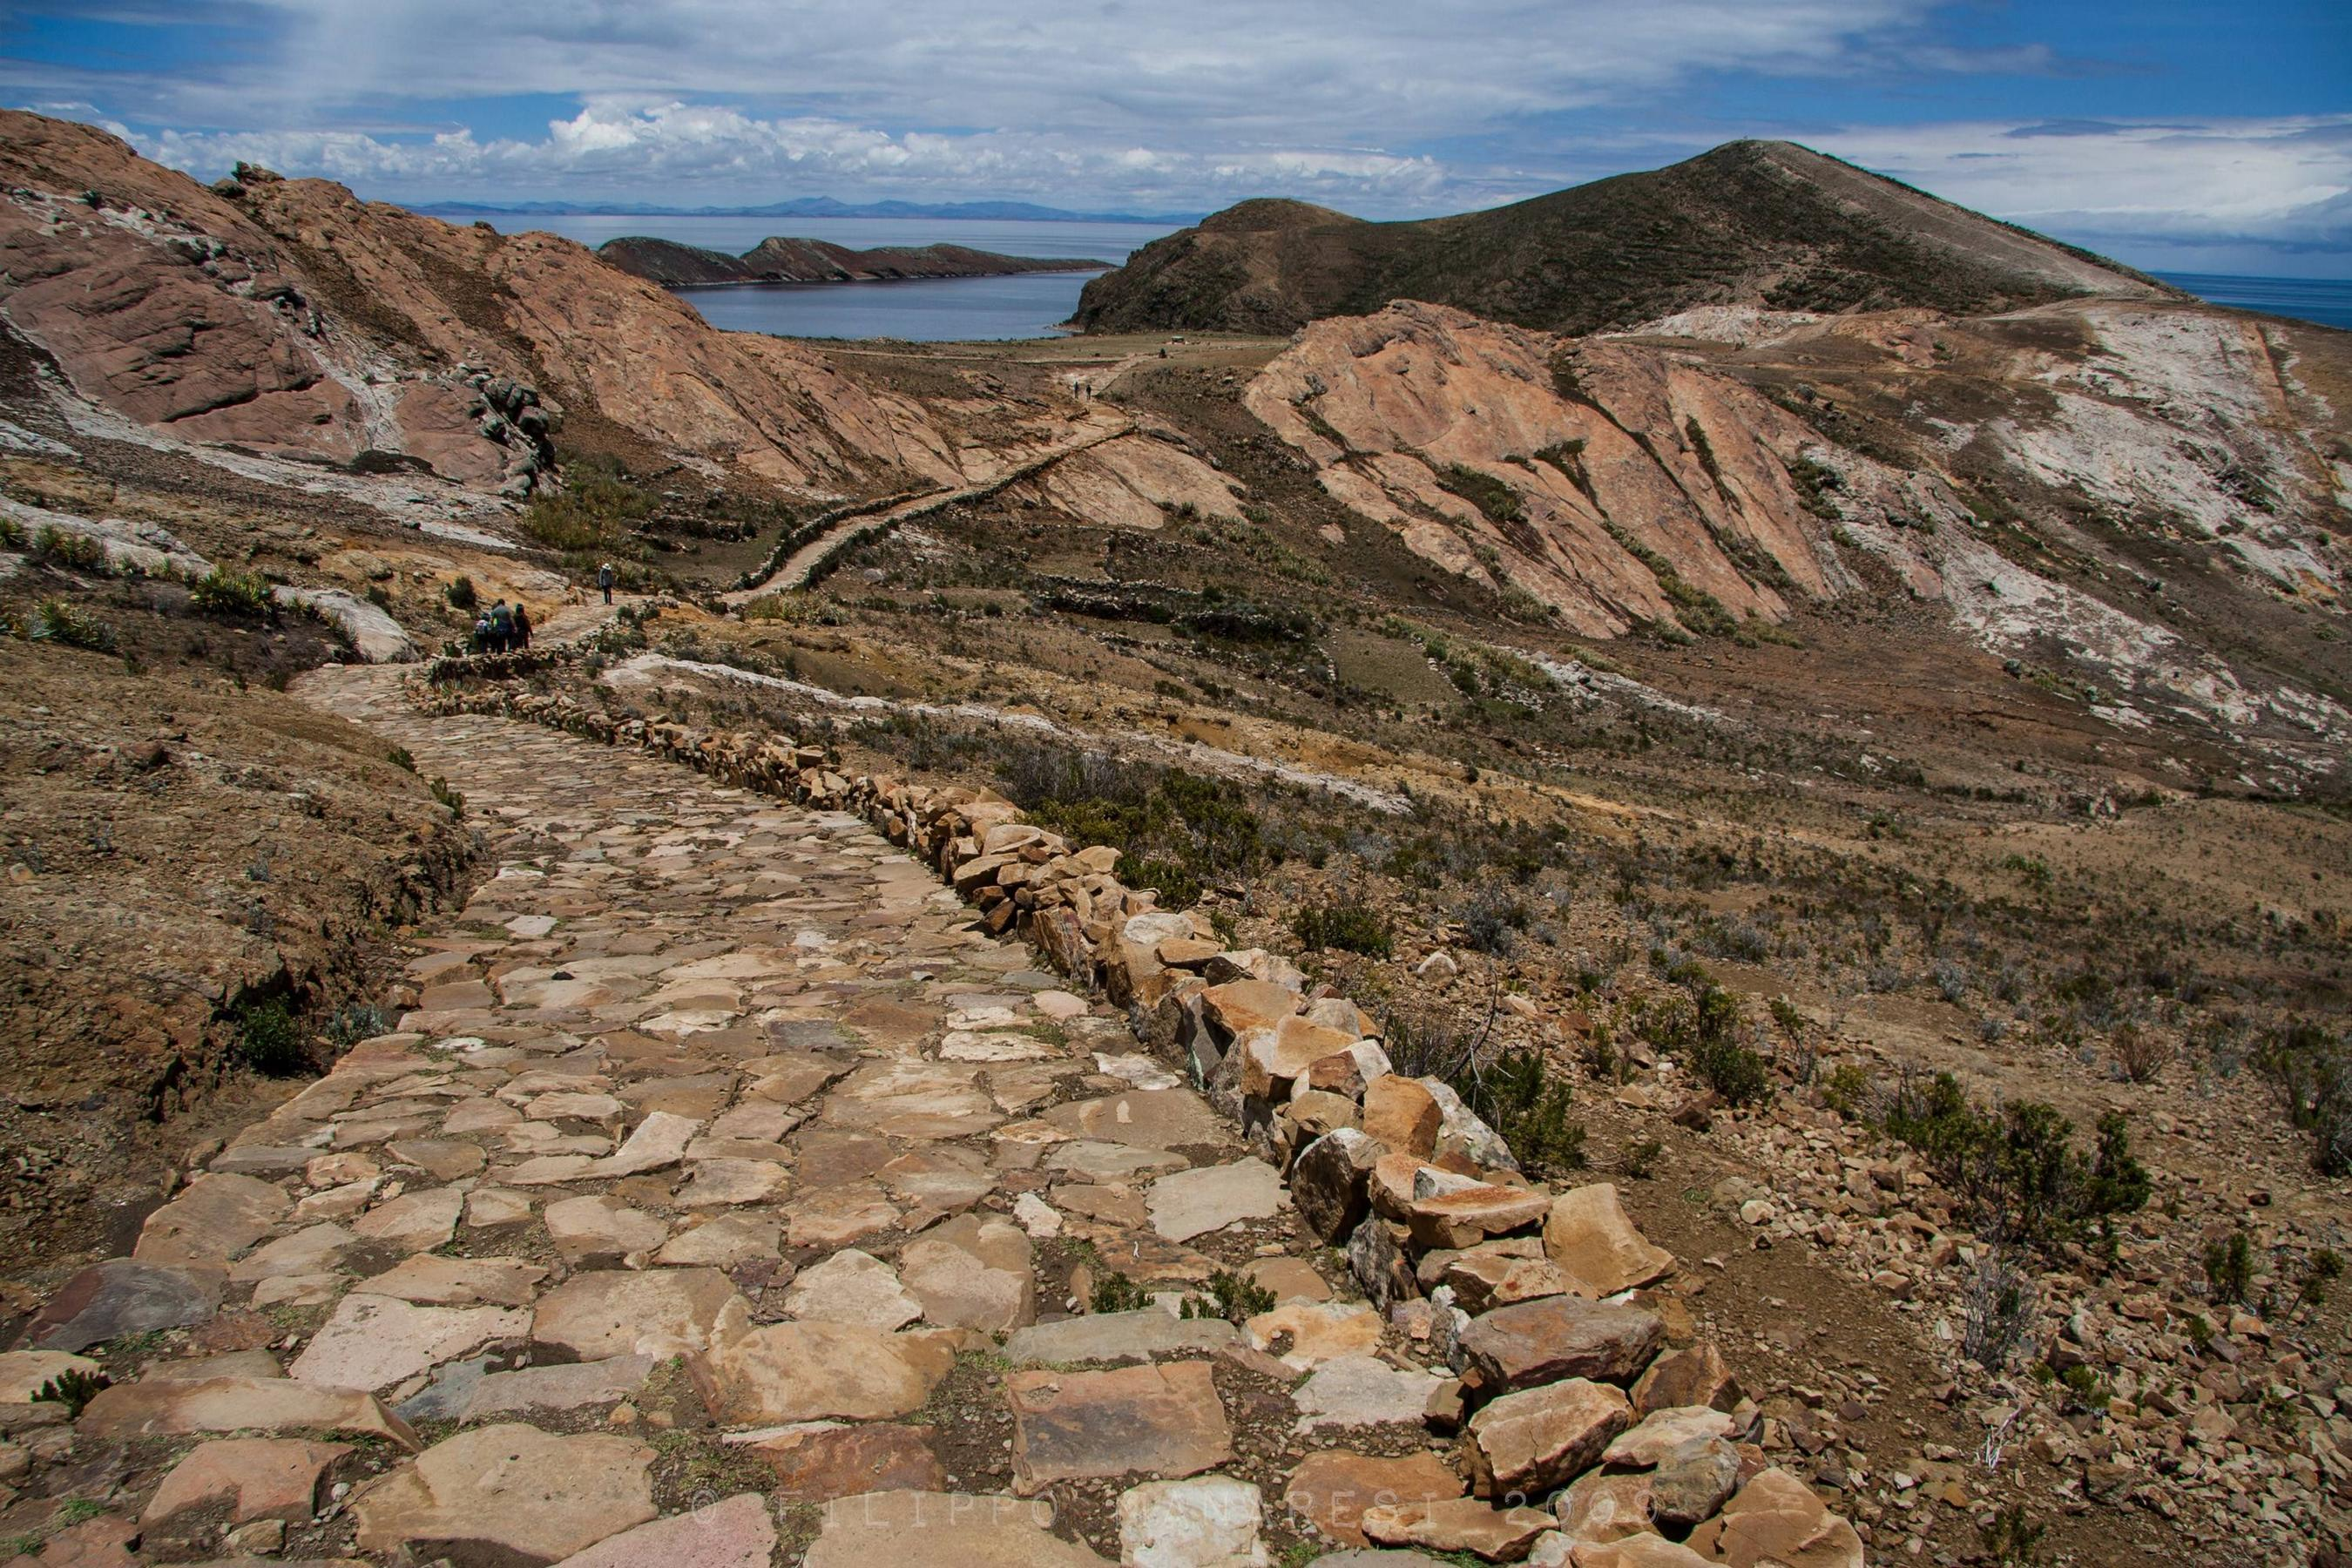 Inca trail - Wallpapers, backgrounds and more